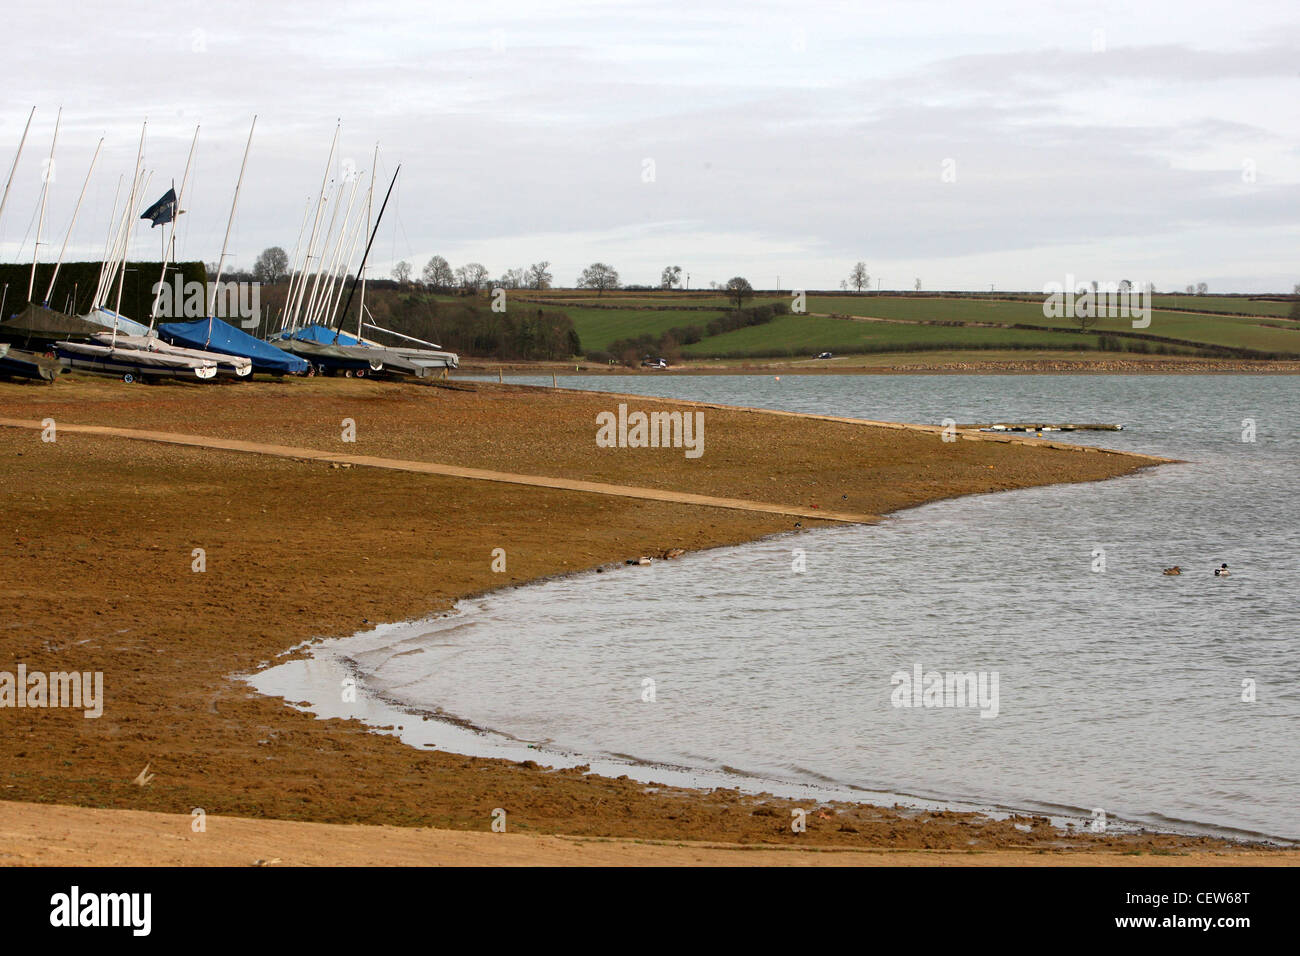 PITSFORD RESERVOIR in northamptionshire which is affected by the drought - Stock Image